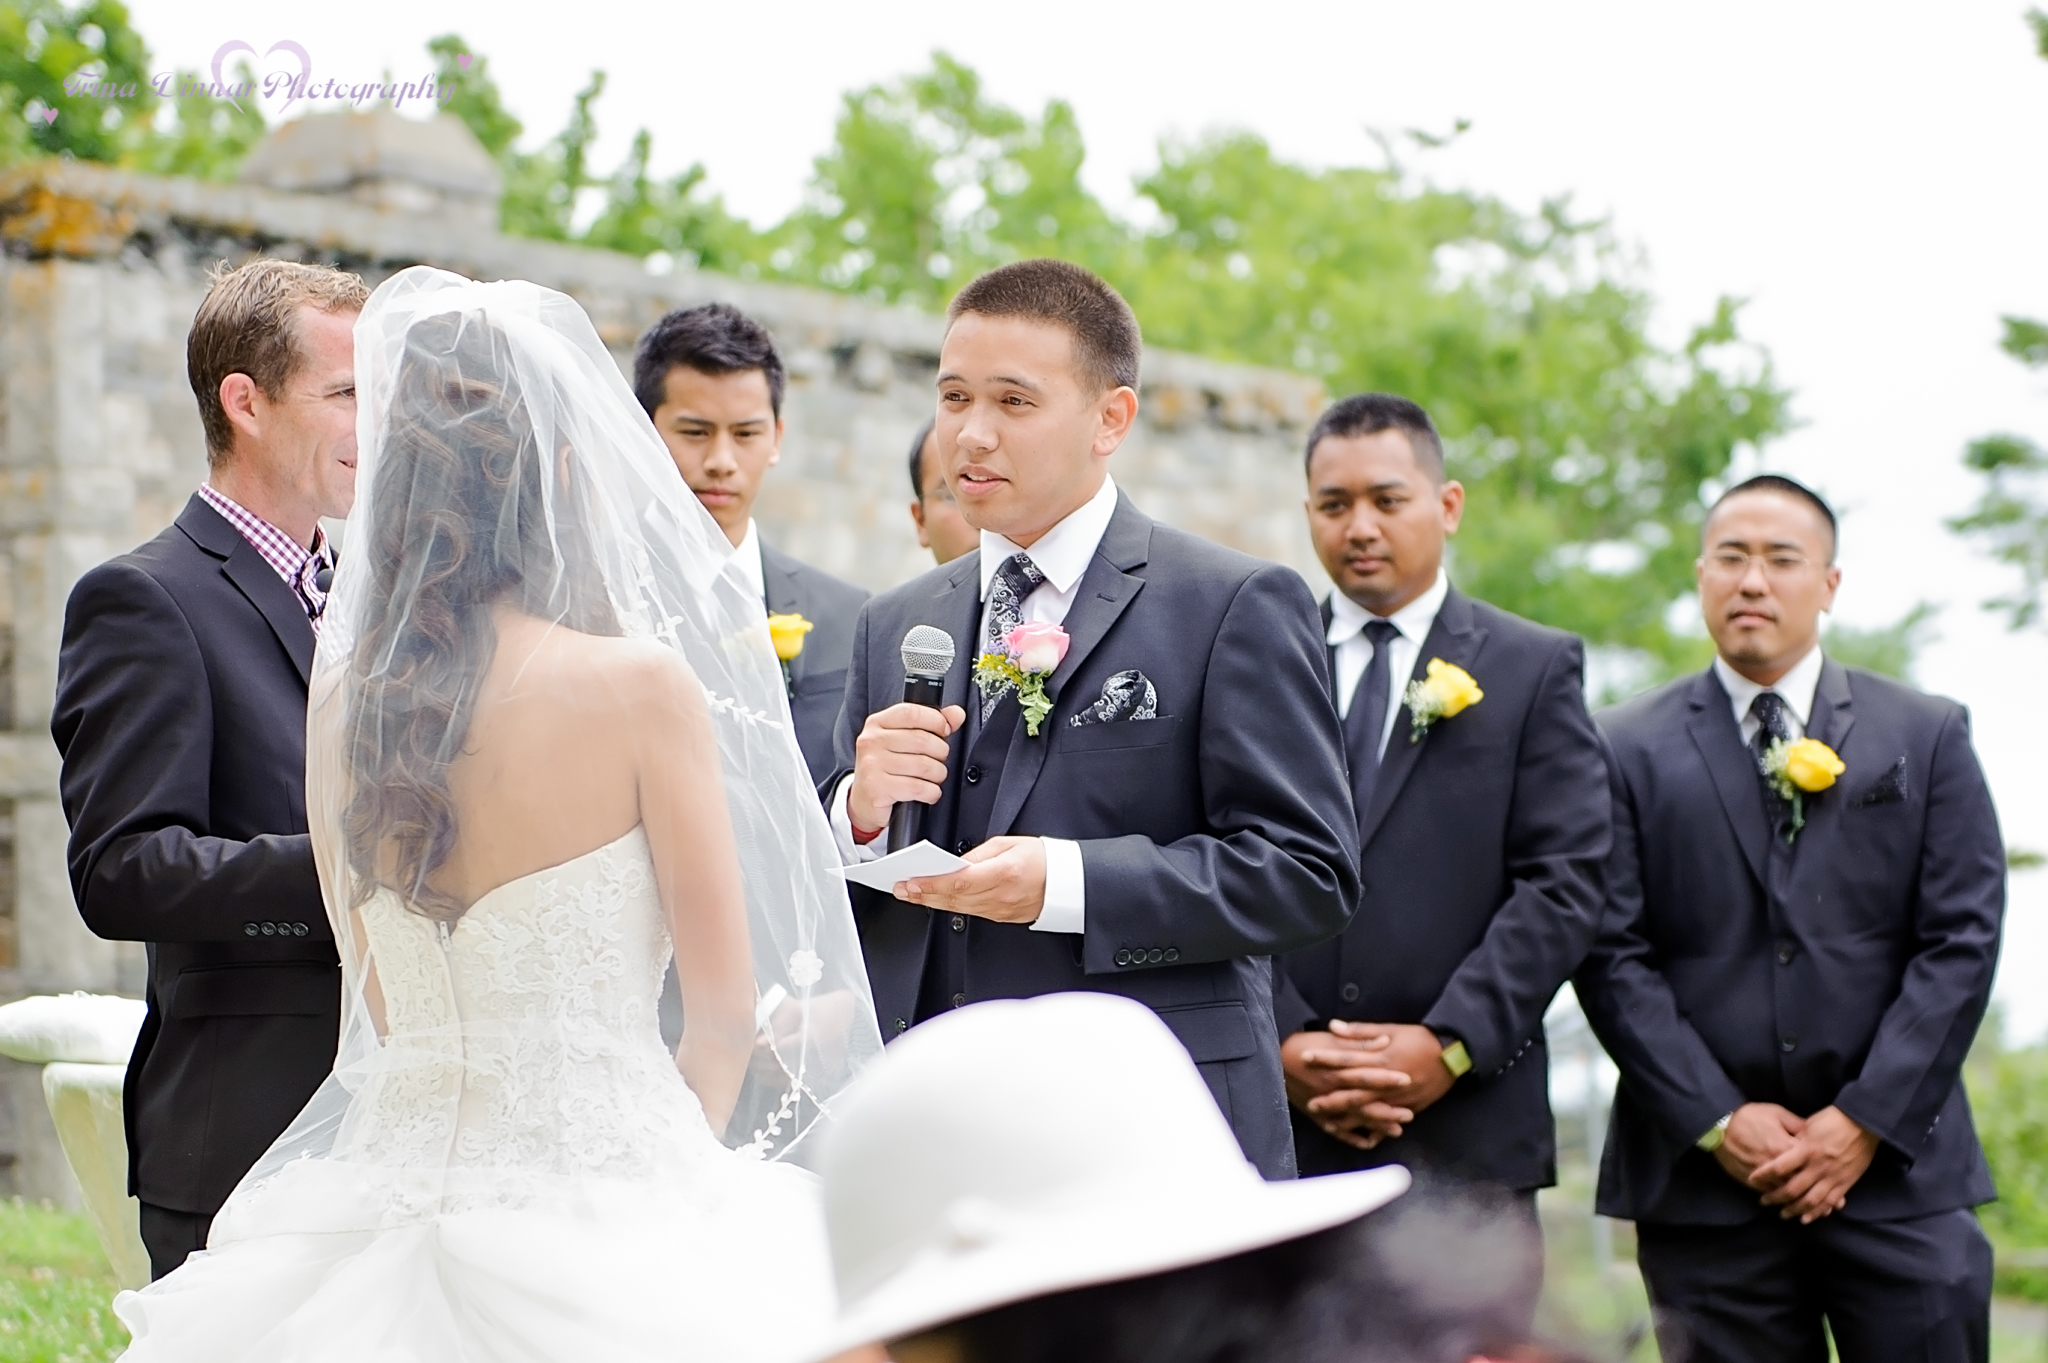 The groom saying his vows as the groomsmen look on at their Cape Elizabeth wedding in Maine